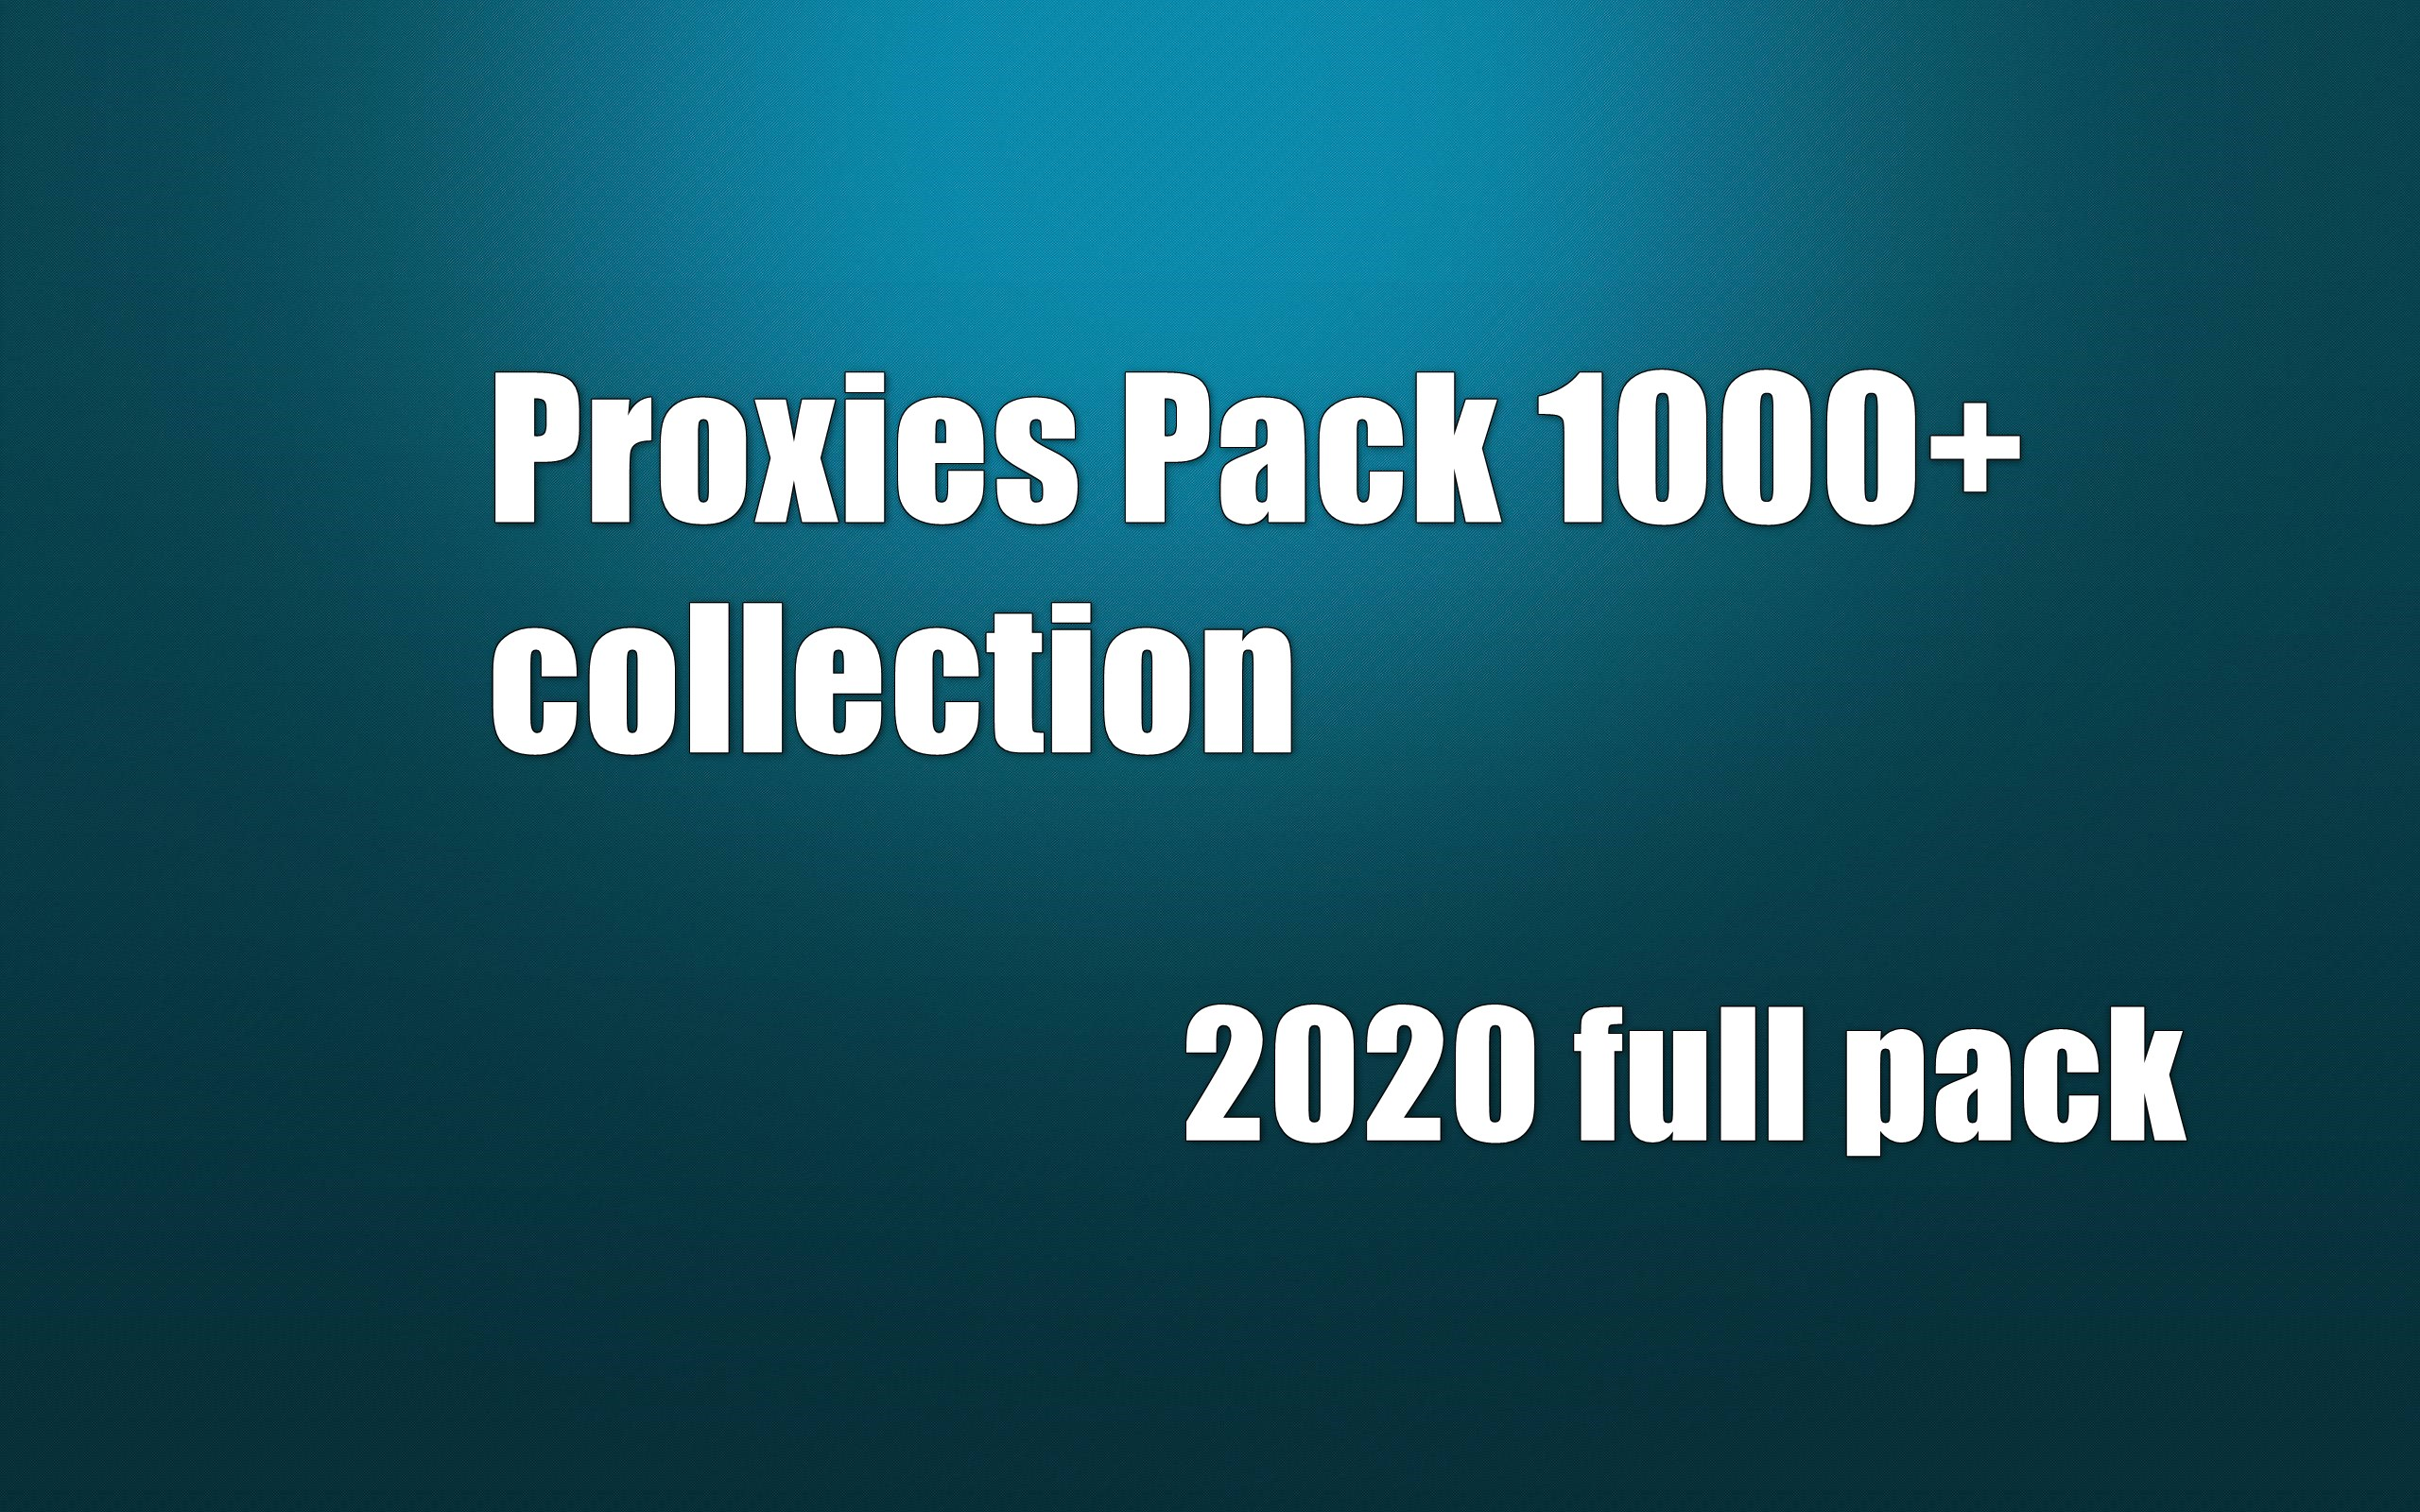 Proxies pack 1000+ collection 2020 full pack